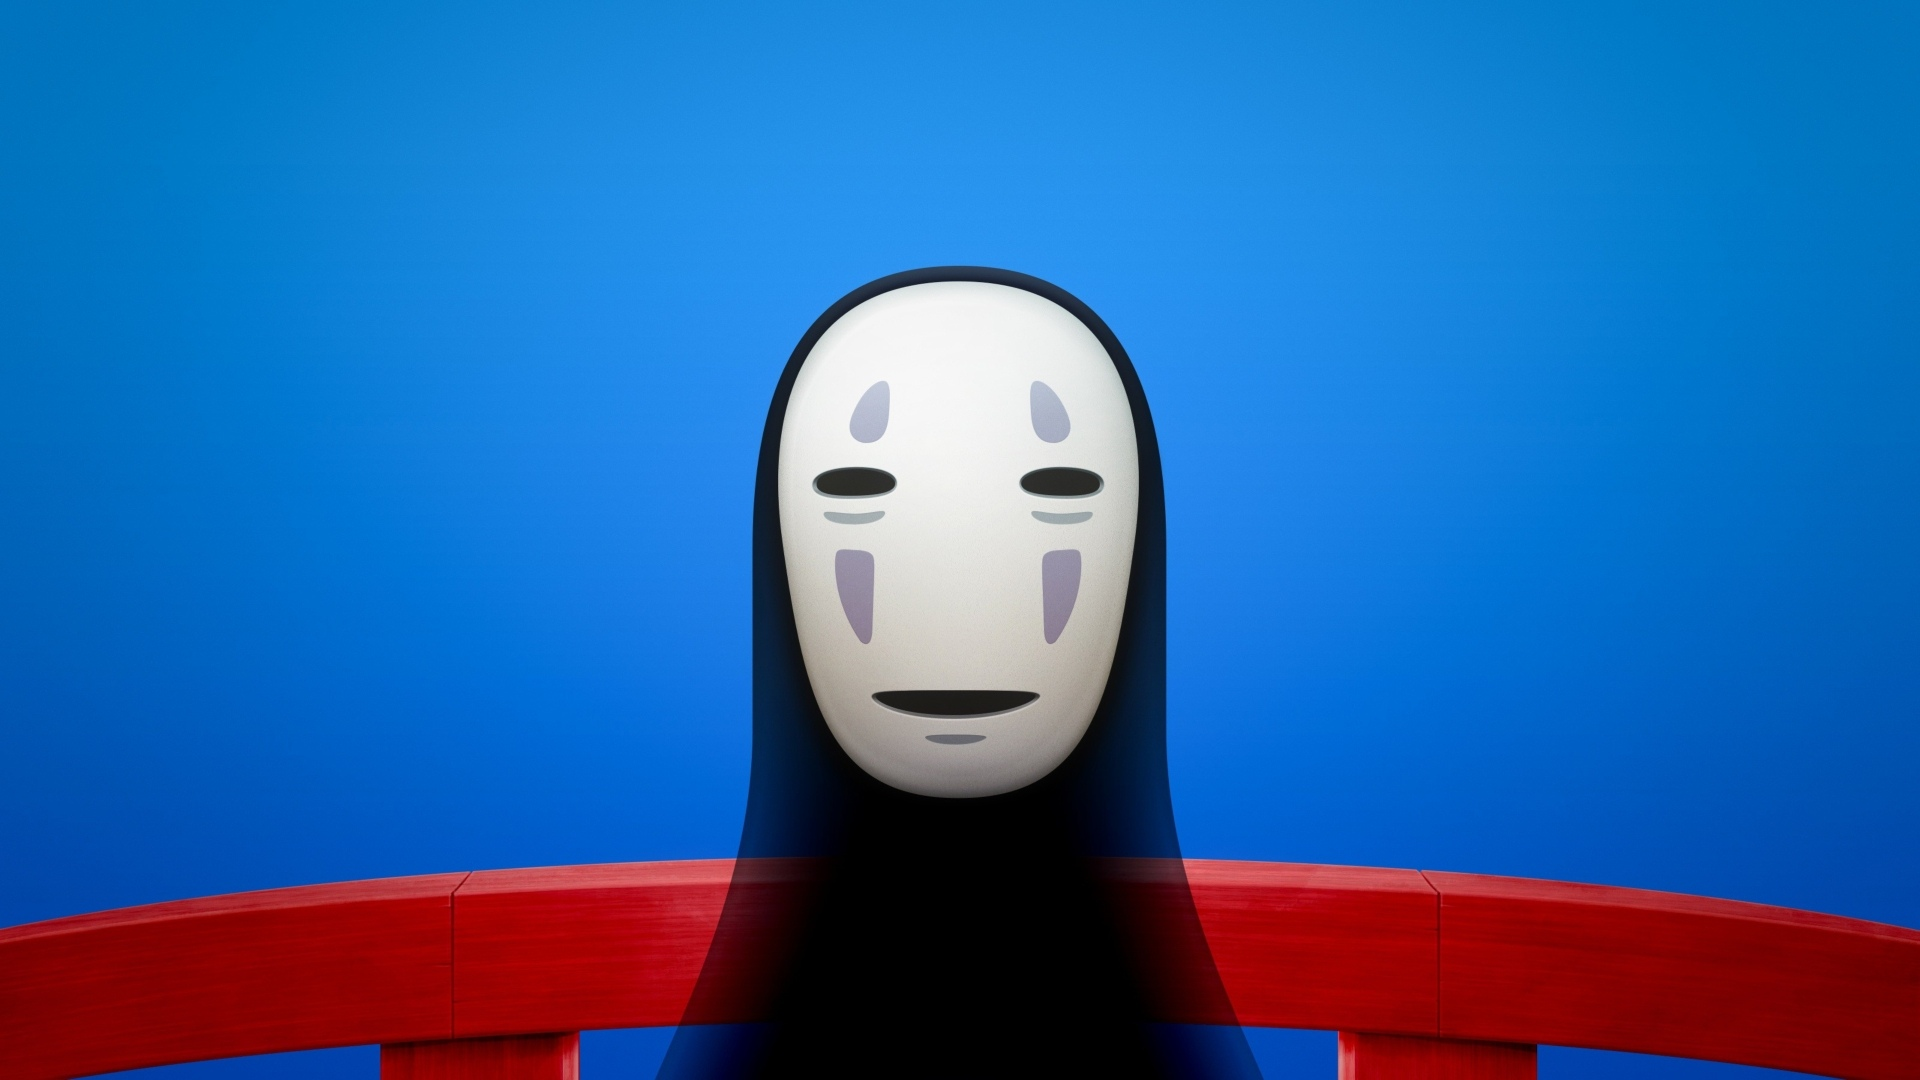 No Face Backgrounds